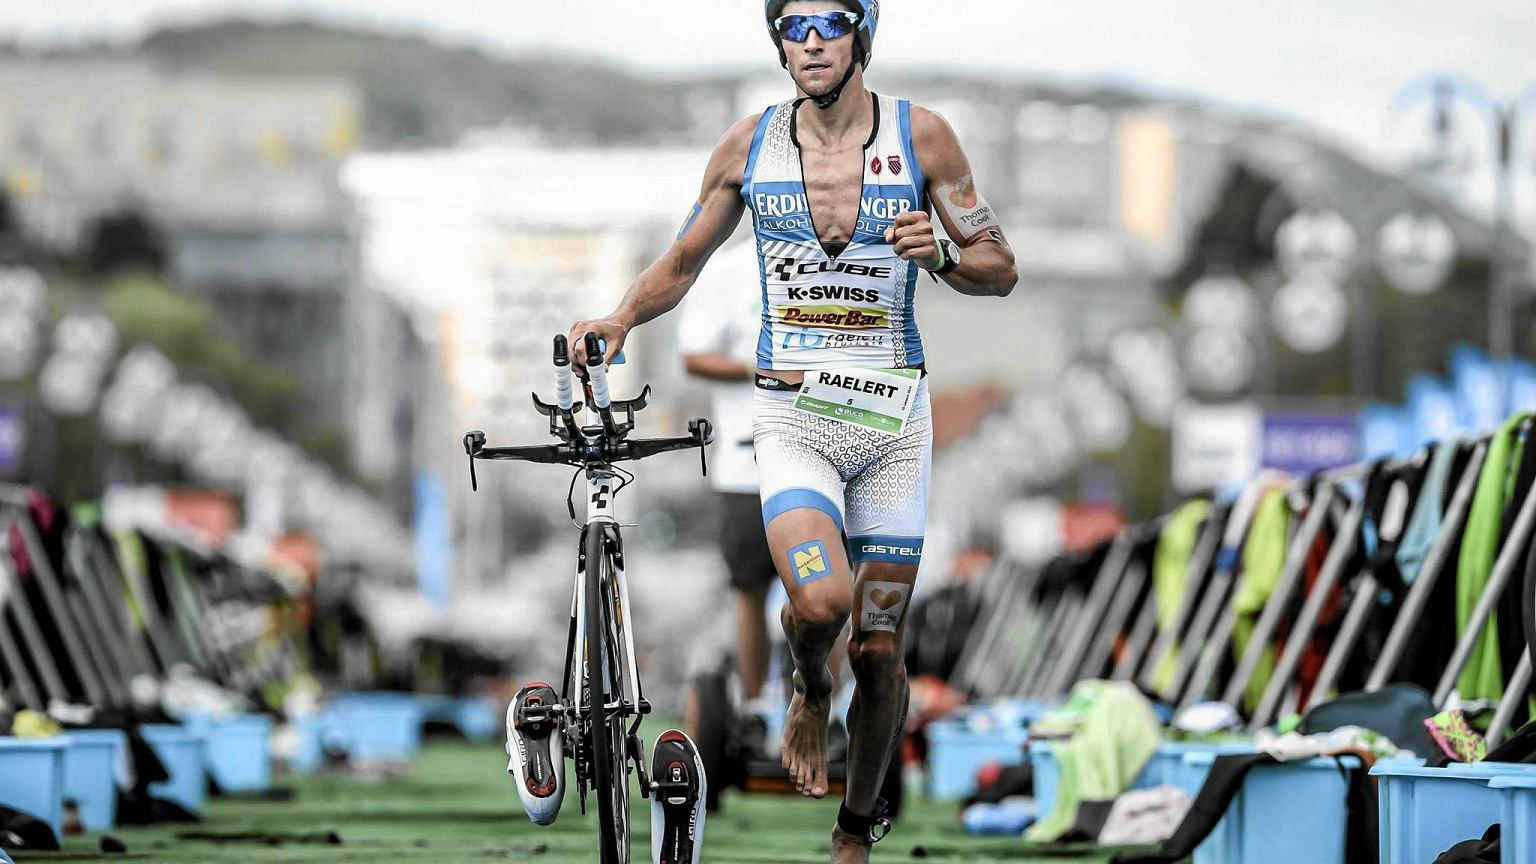 Triathlon wallpaper